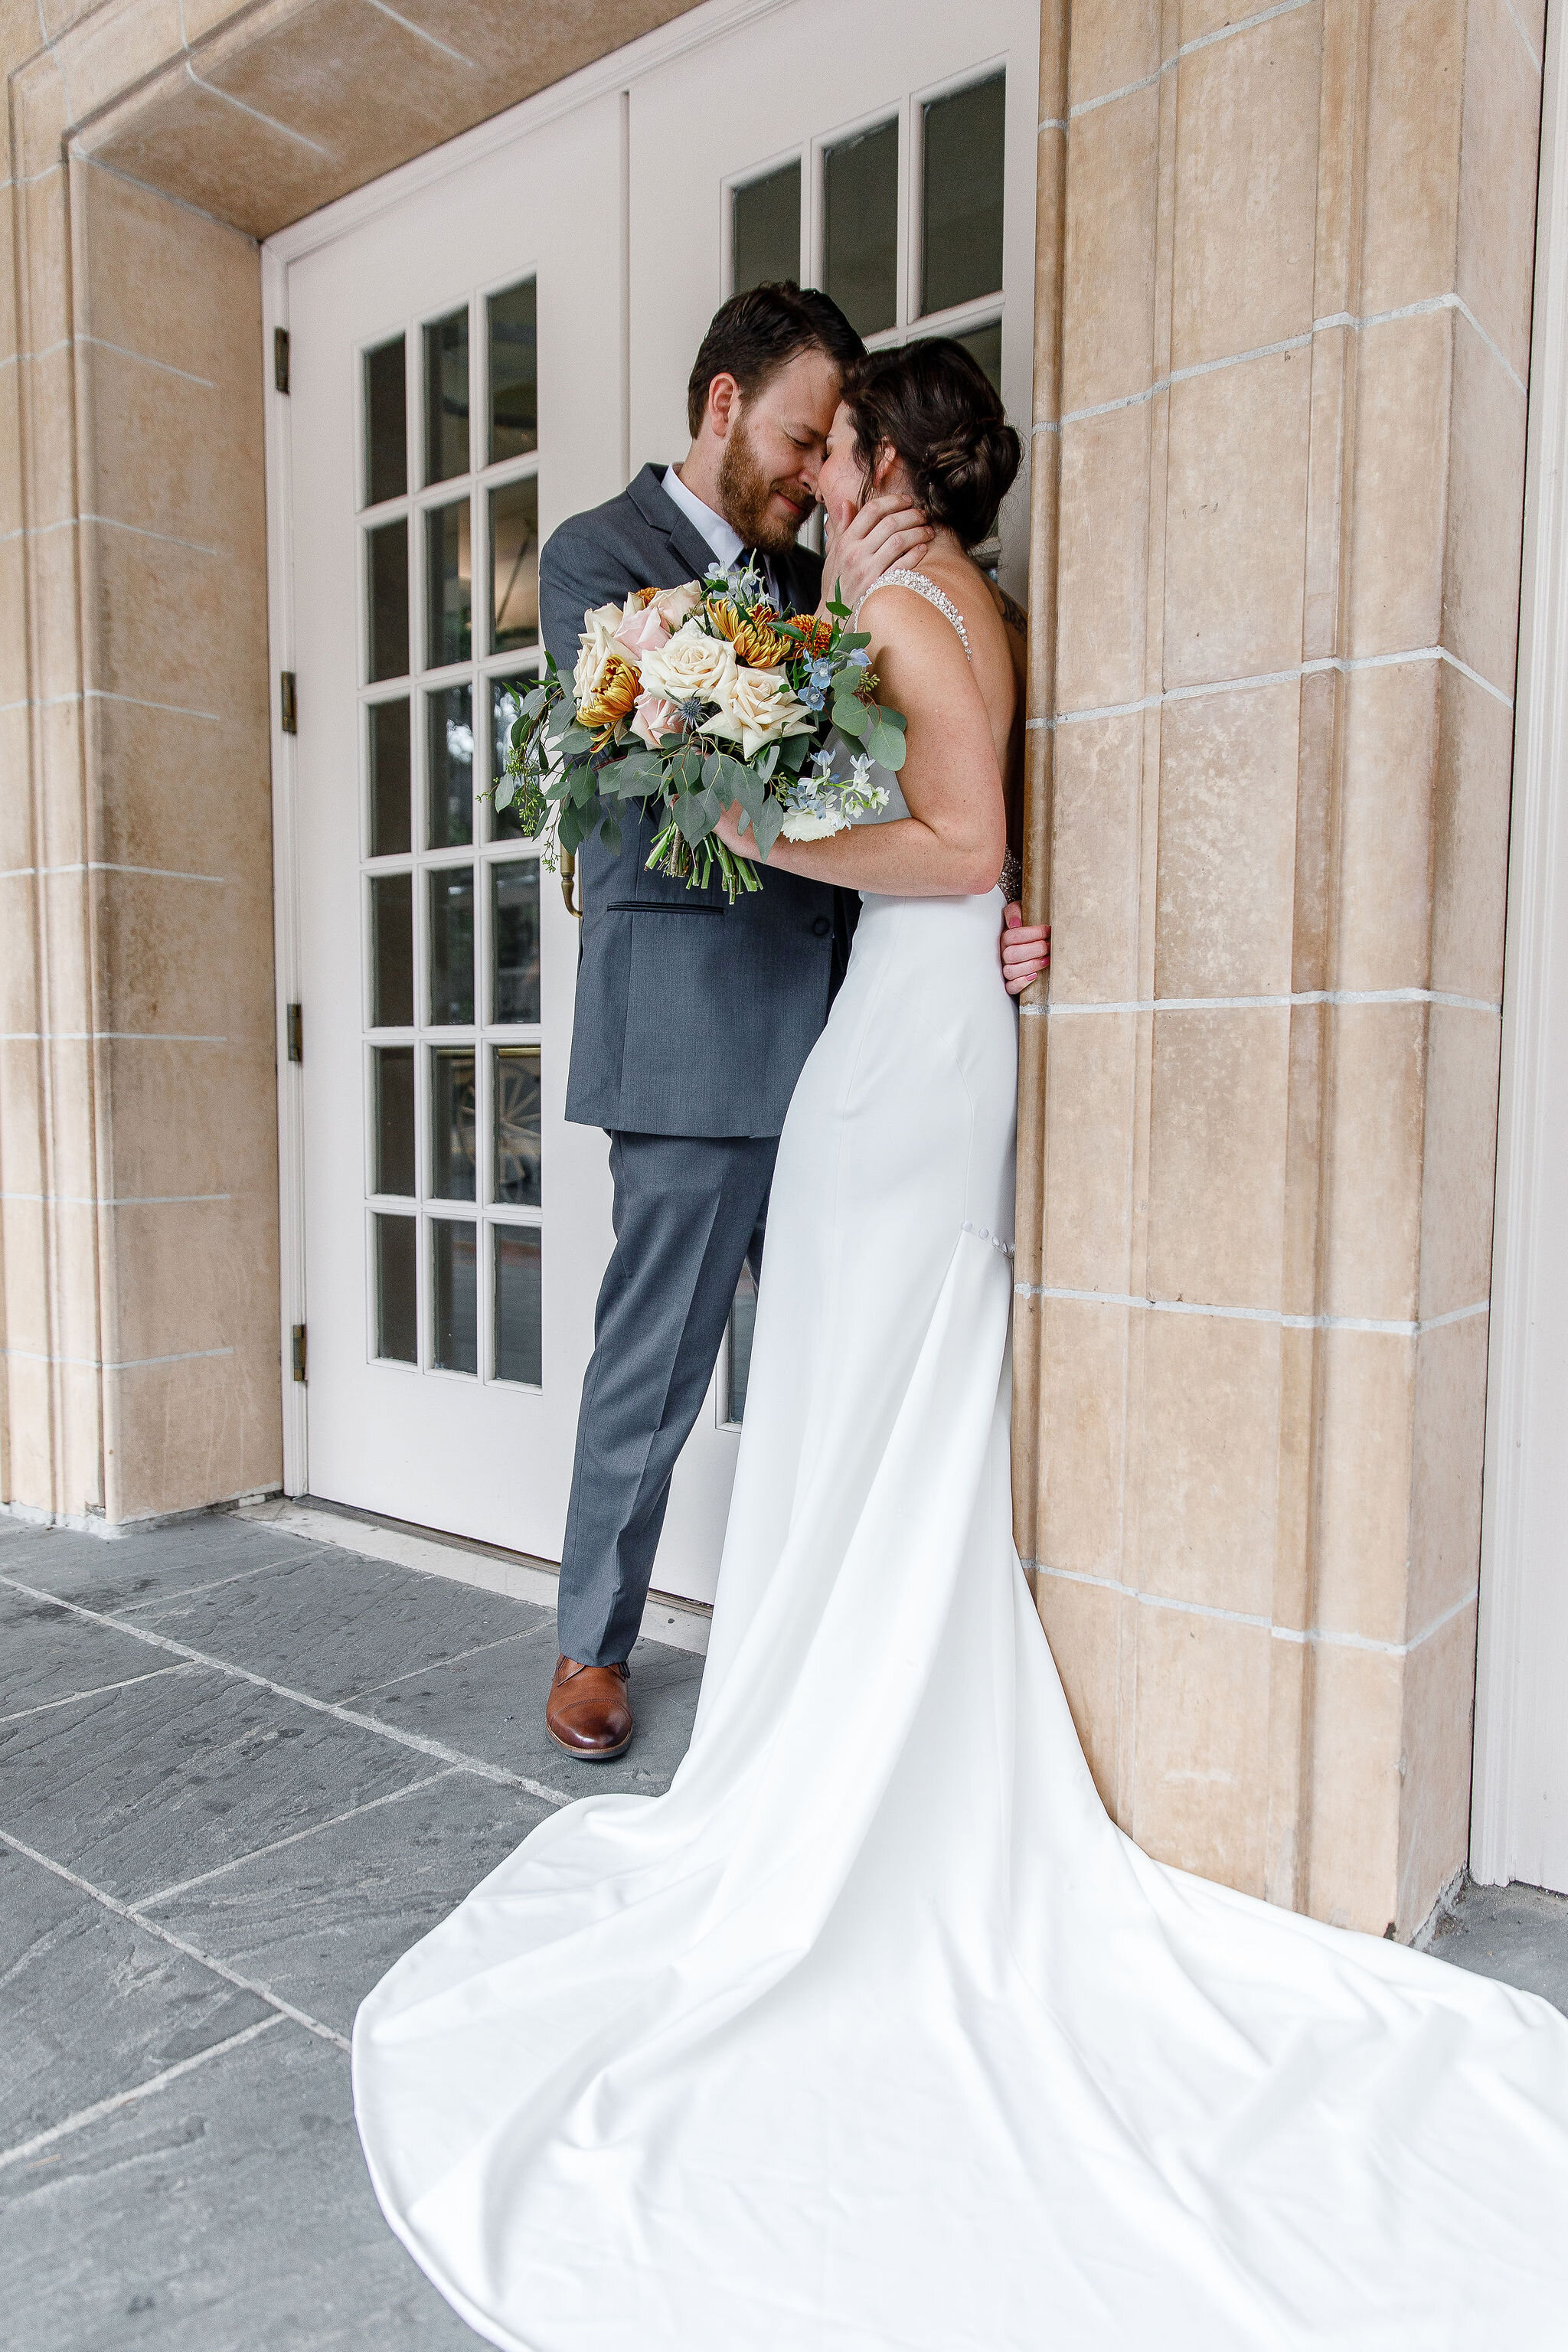 ivory-and-beau-blog-couple-and-florals-shannon-and-mike-wedding-savannah-wedding-planner-savannah-florist-savannah-wedding-southern-florist-southern-wedding-alida-hotel-118.jpg